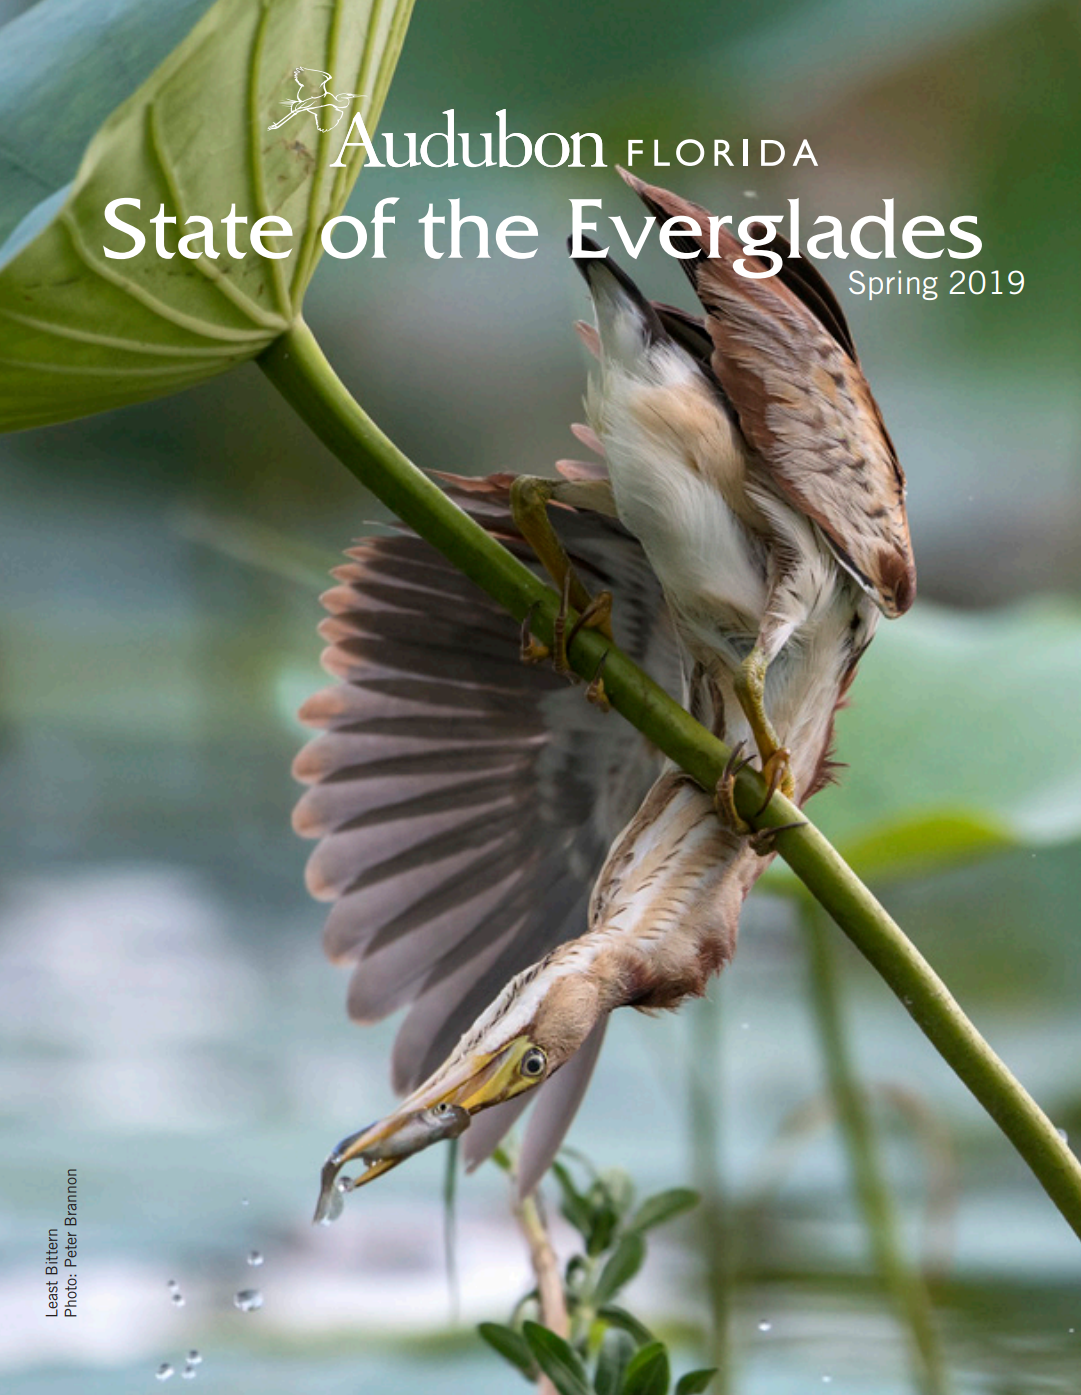 State of the Everglades Spring 2019 cover